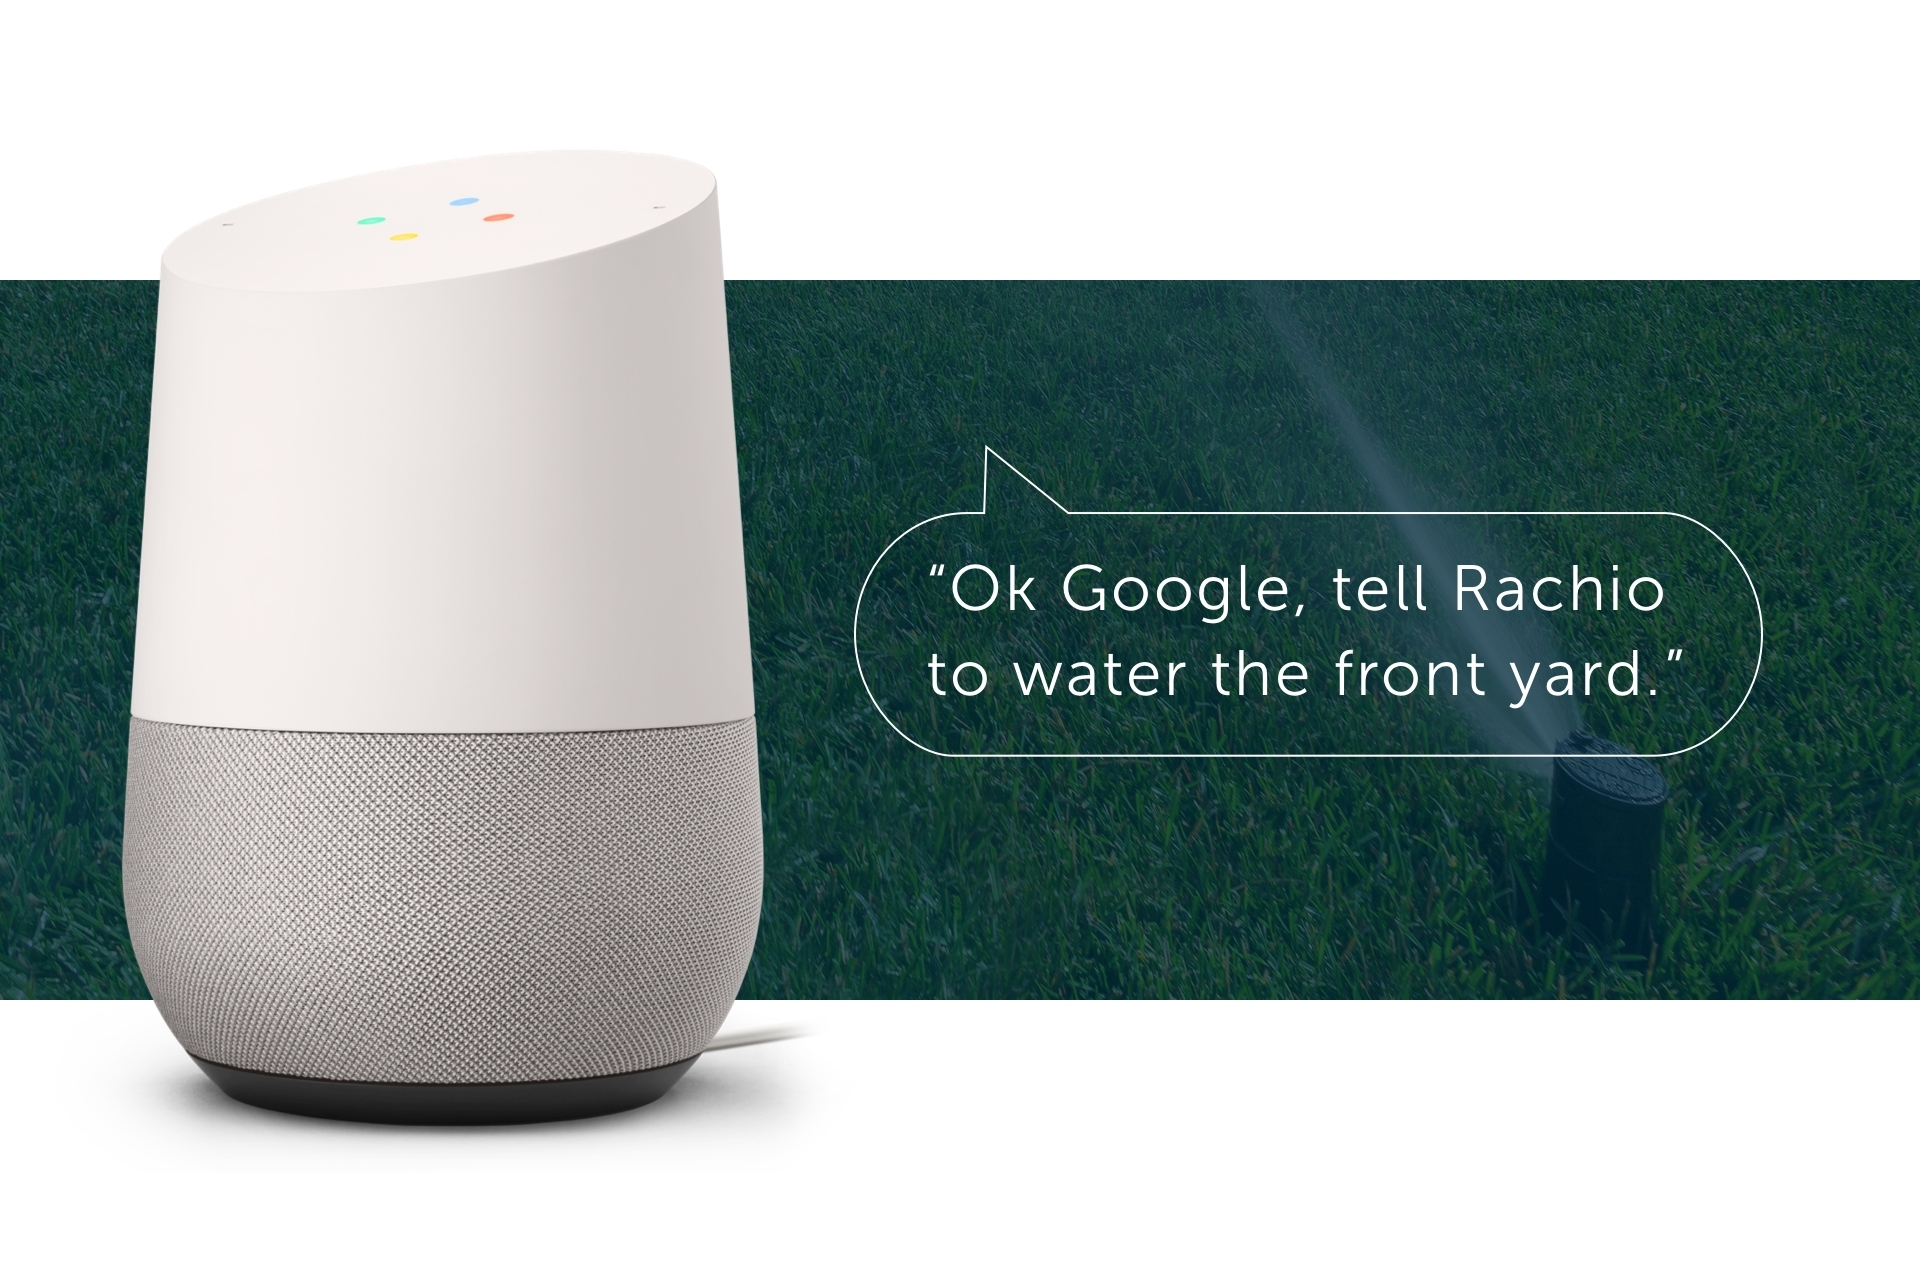 Rachio is World's First Smart Sprinkler Controller to Deliver Full Integration with the Google Assistant (Photo: Business Wire)